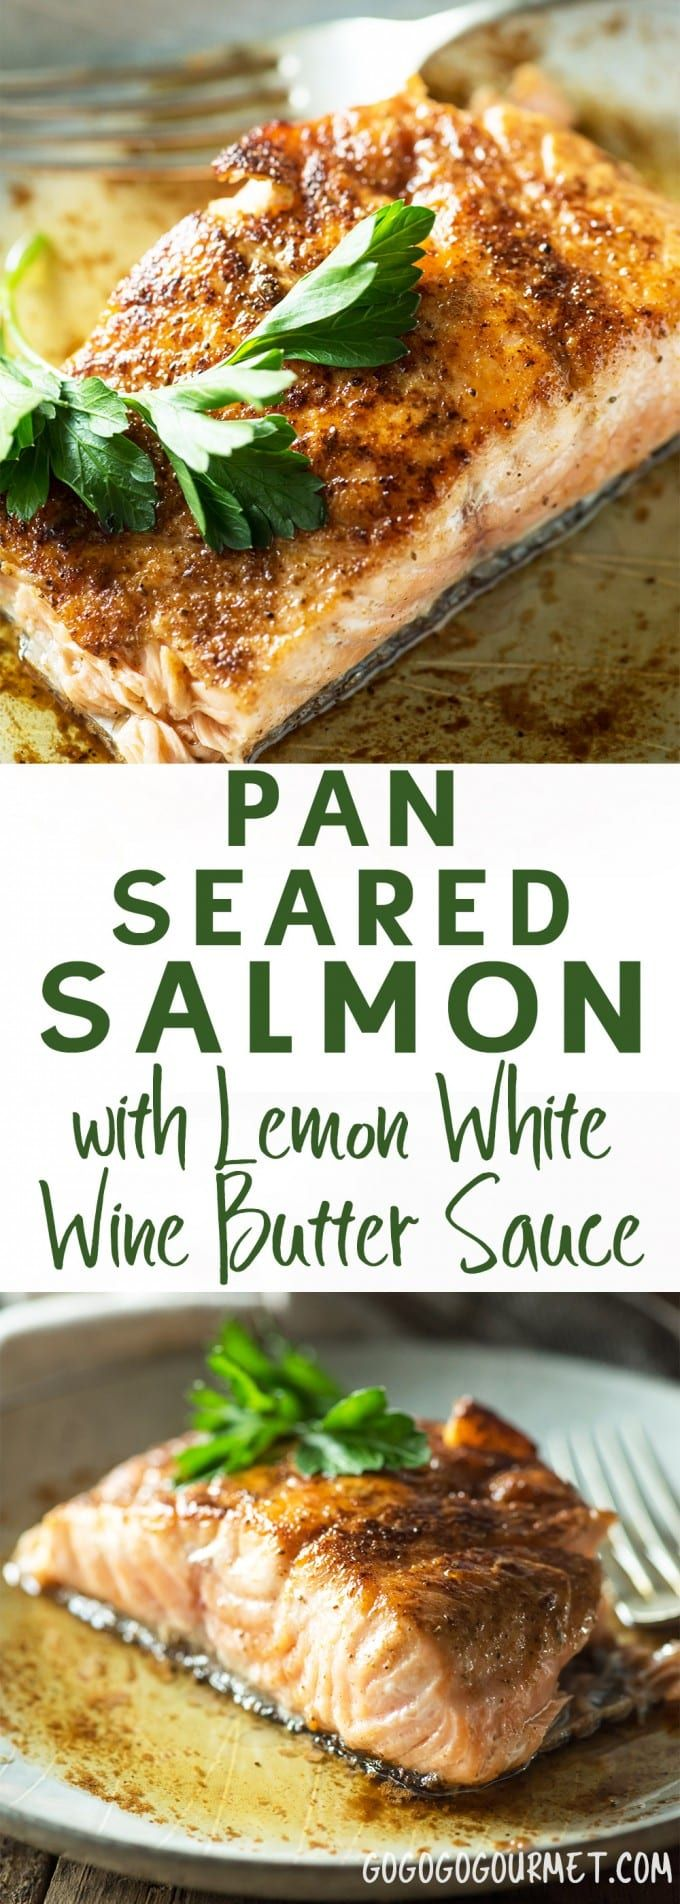 This Pan Seared Salmon with Lemon White Wine Butter Sauce is a fast and easy salmon recipe for busy weeknights.  via @gogogogourmet